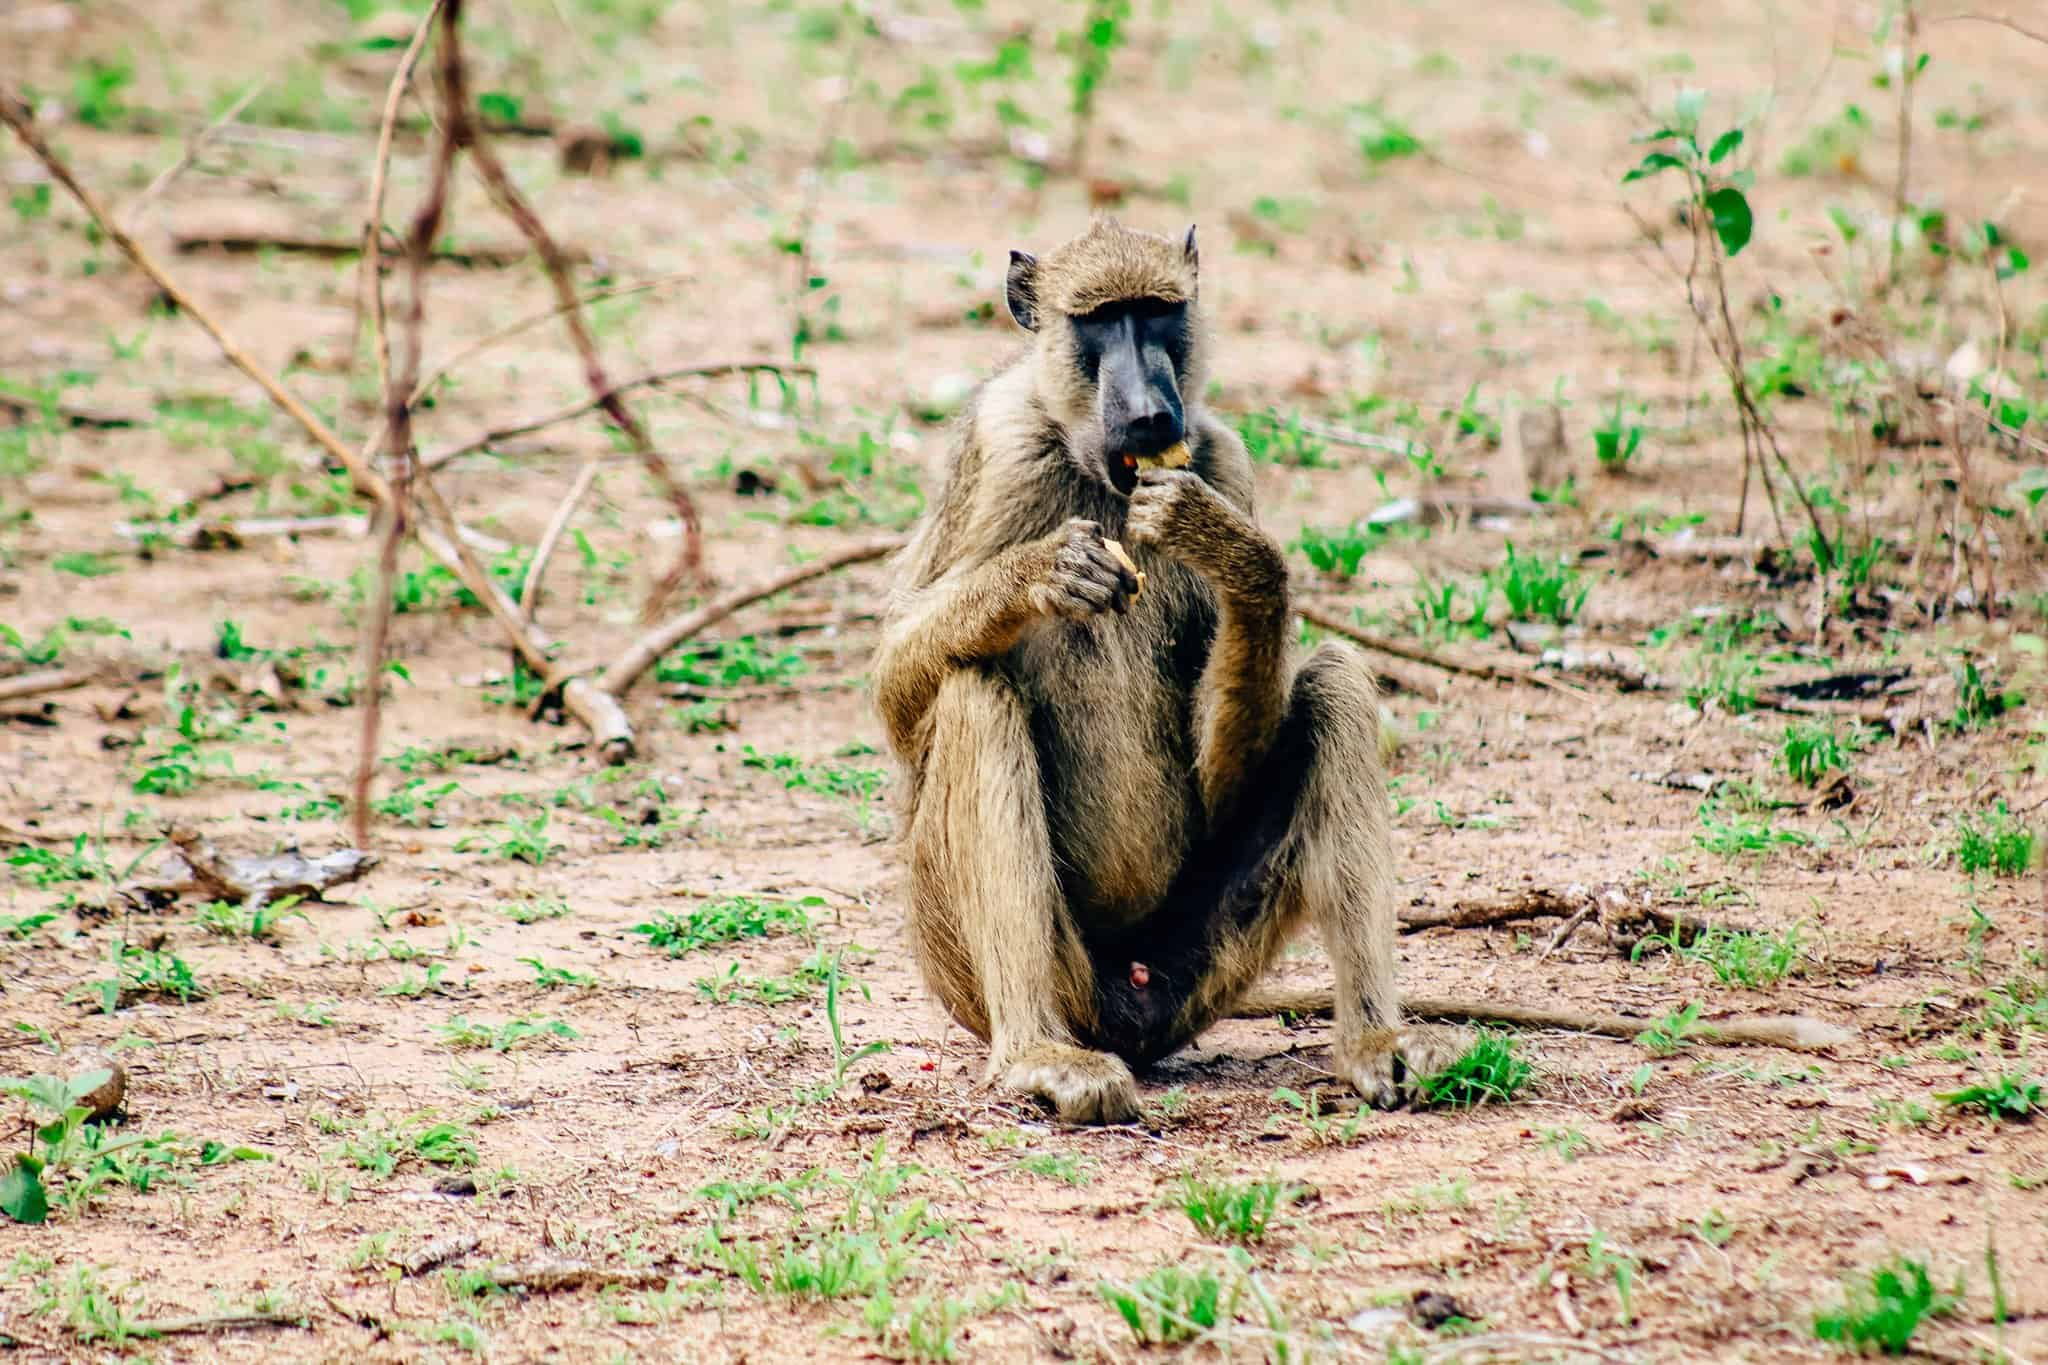 The Start of our First African Safari - Baboon